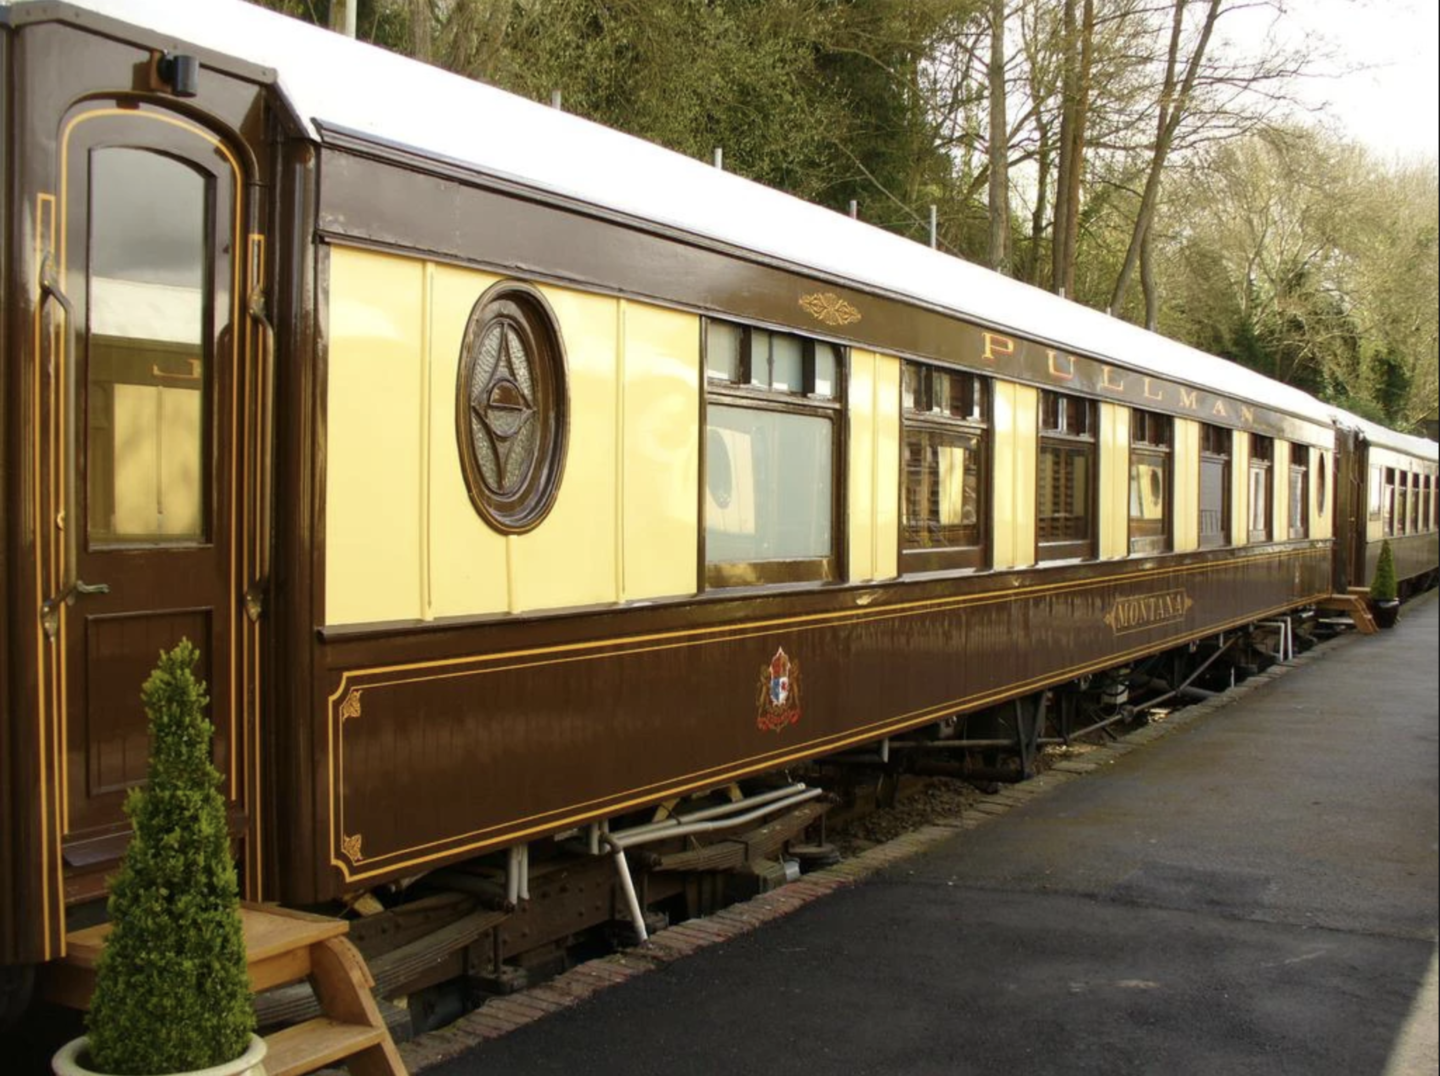 Converted Pullman Carriages